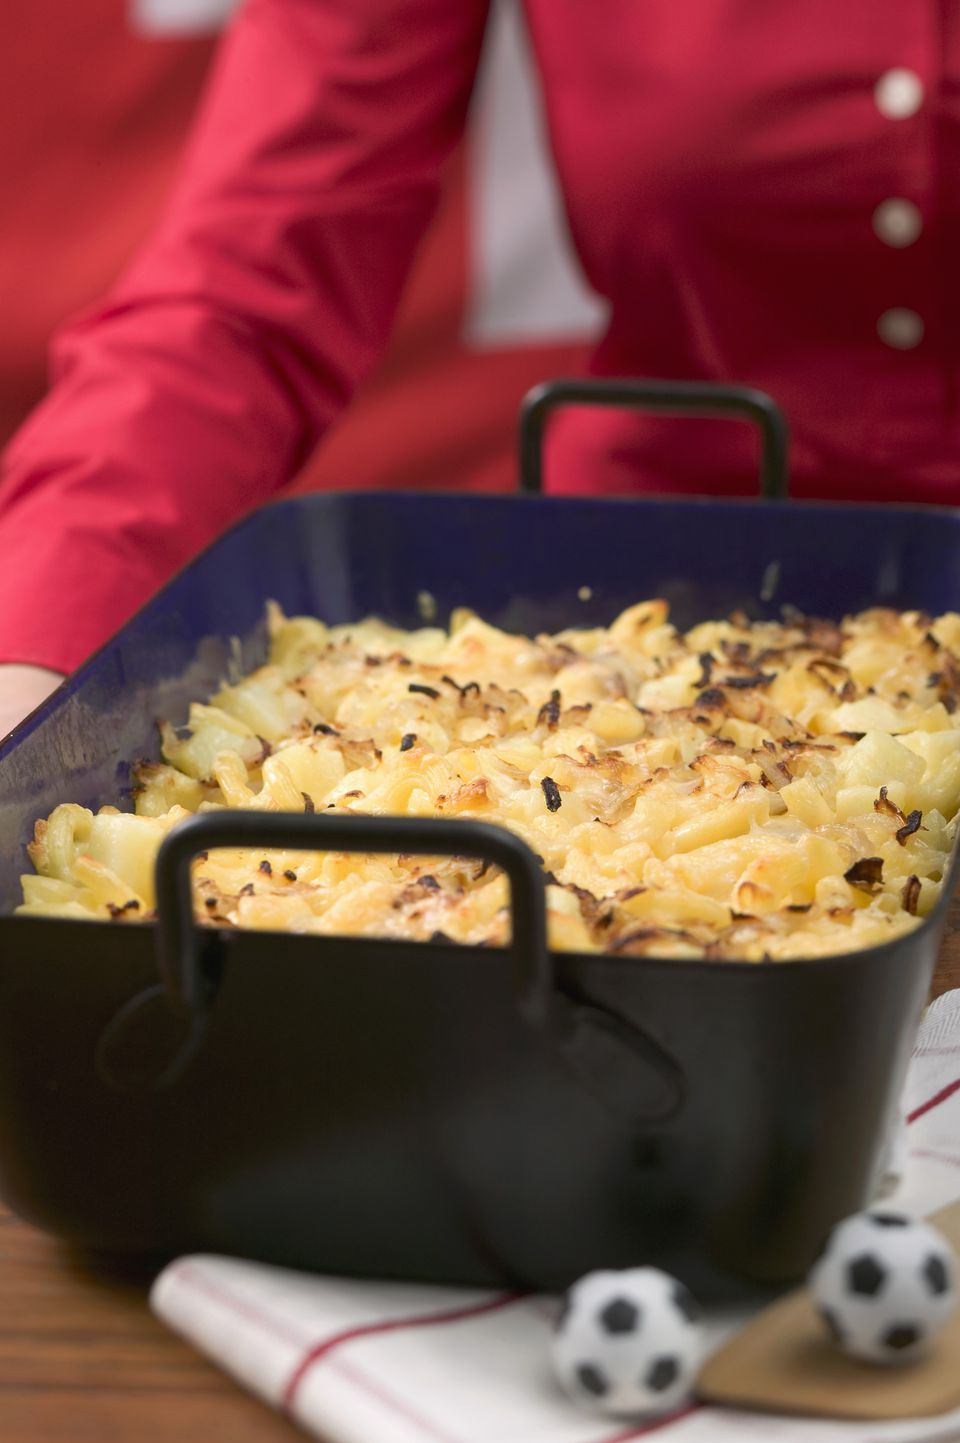 Woman serving cheese and onion pasta bake (Switzerland)